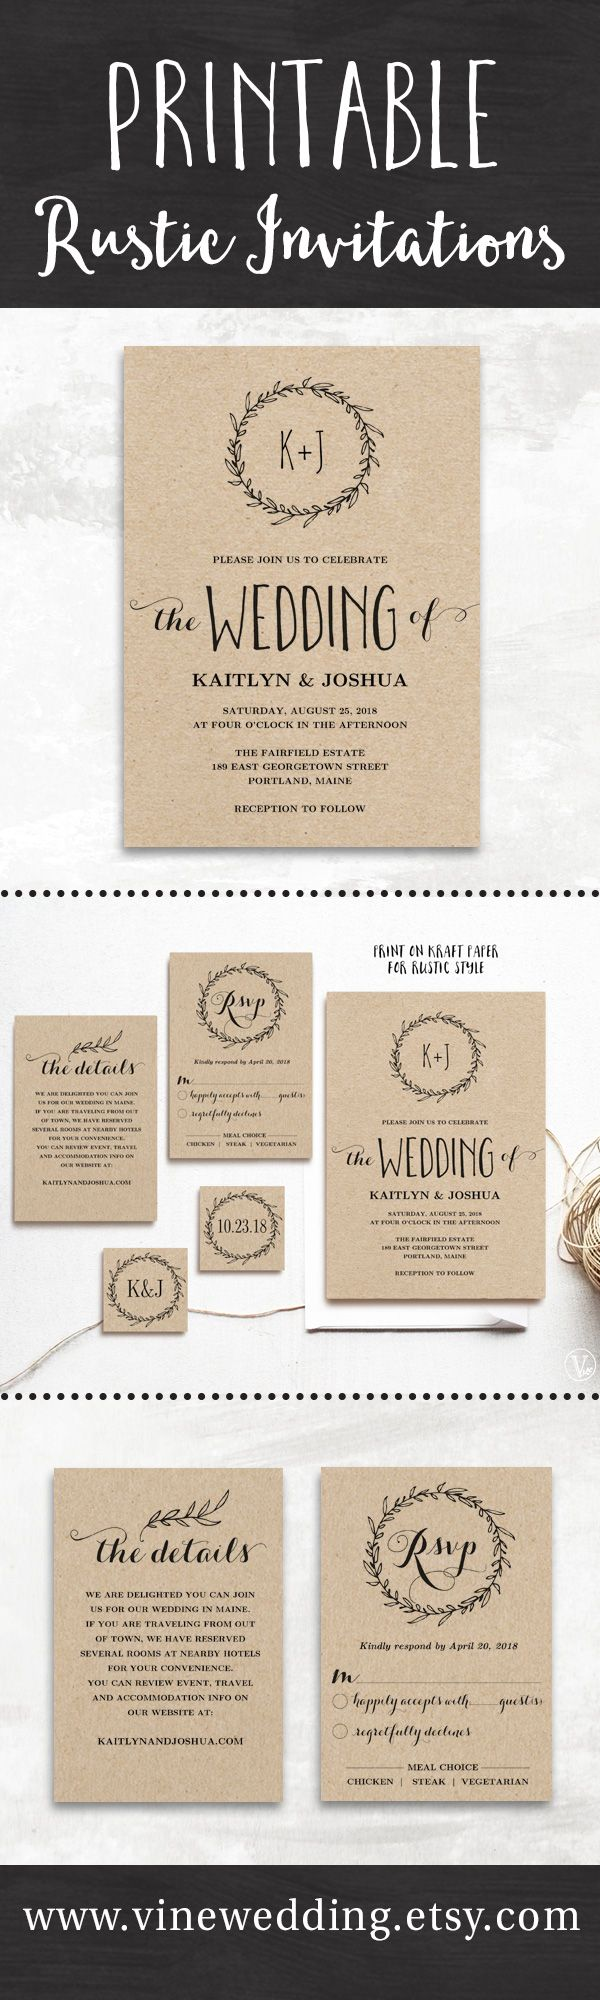 166 best DIY\'s Invitations images on Pinterest | Invitations ...